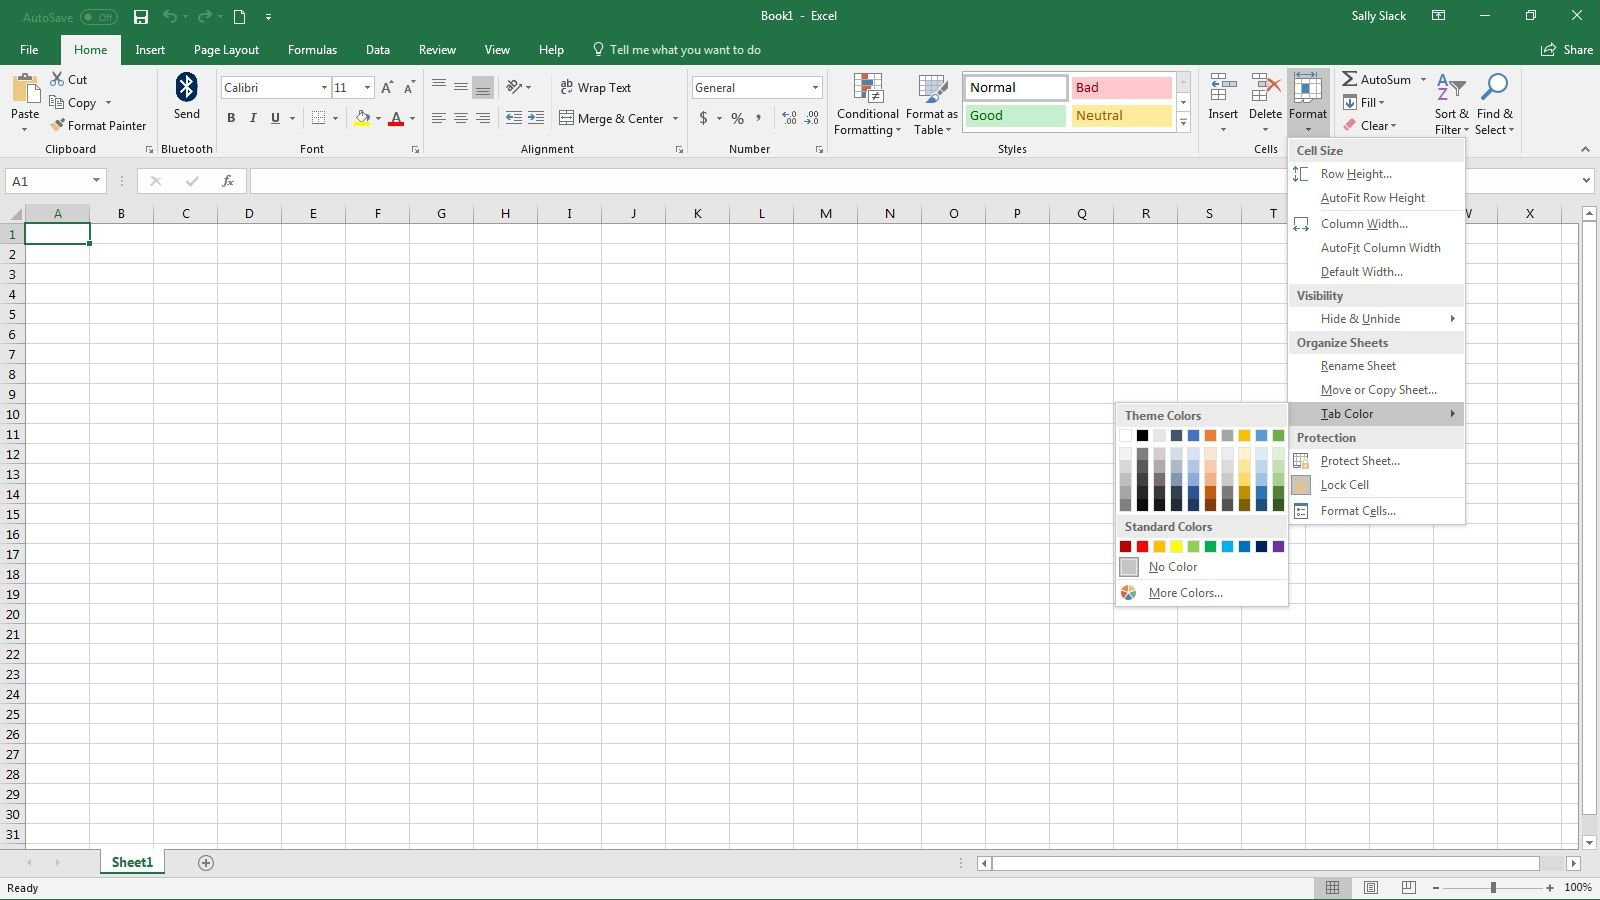 Excelcolortabs-5ab288f3fa6bcc003663ced3 Change Color Worksheet Tab Excel on excel range, database worksheet tab, excel 2010 toolbar, excel data, excel formula, excel absolute reference, excel business spreadsheet example, excel table format, excel cell, excel conditional formatting, excel spreadsheet tutorial, excel relative reference,